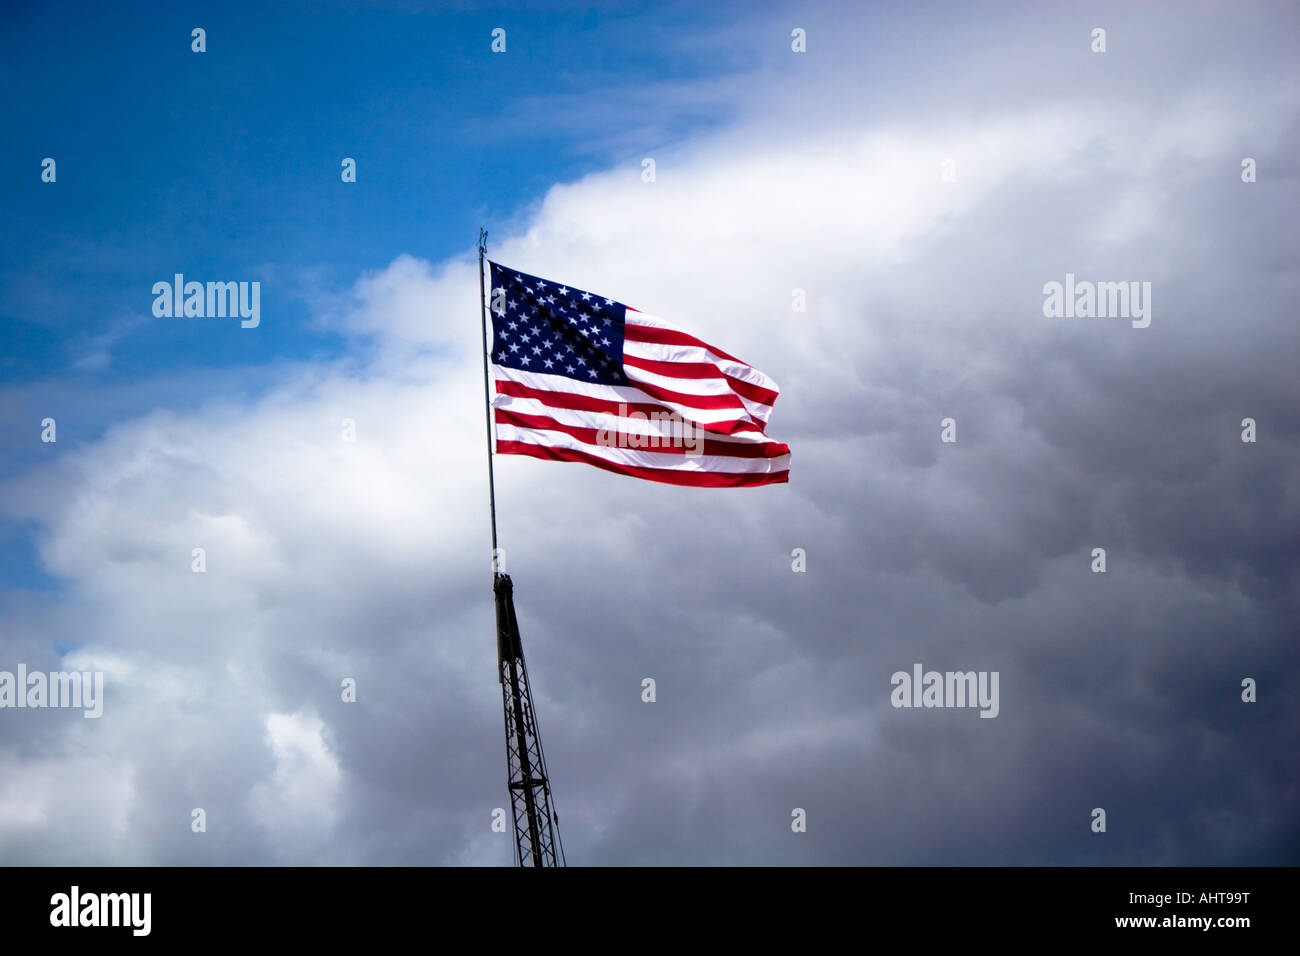 The American flag fluttering in the wind Stock Photo